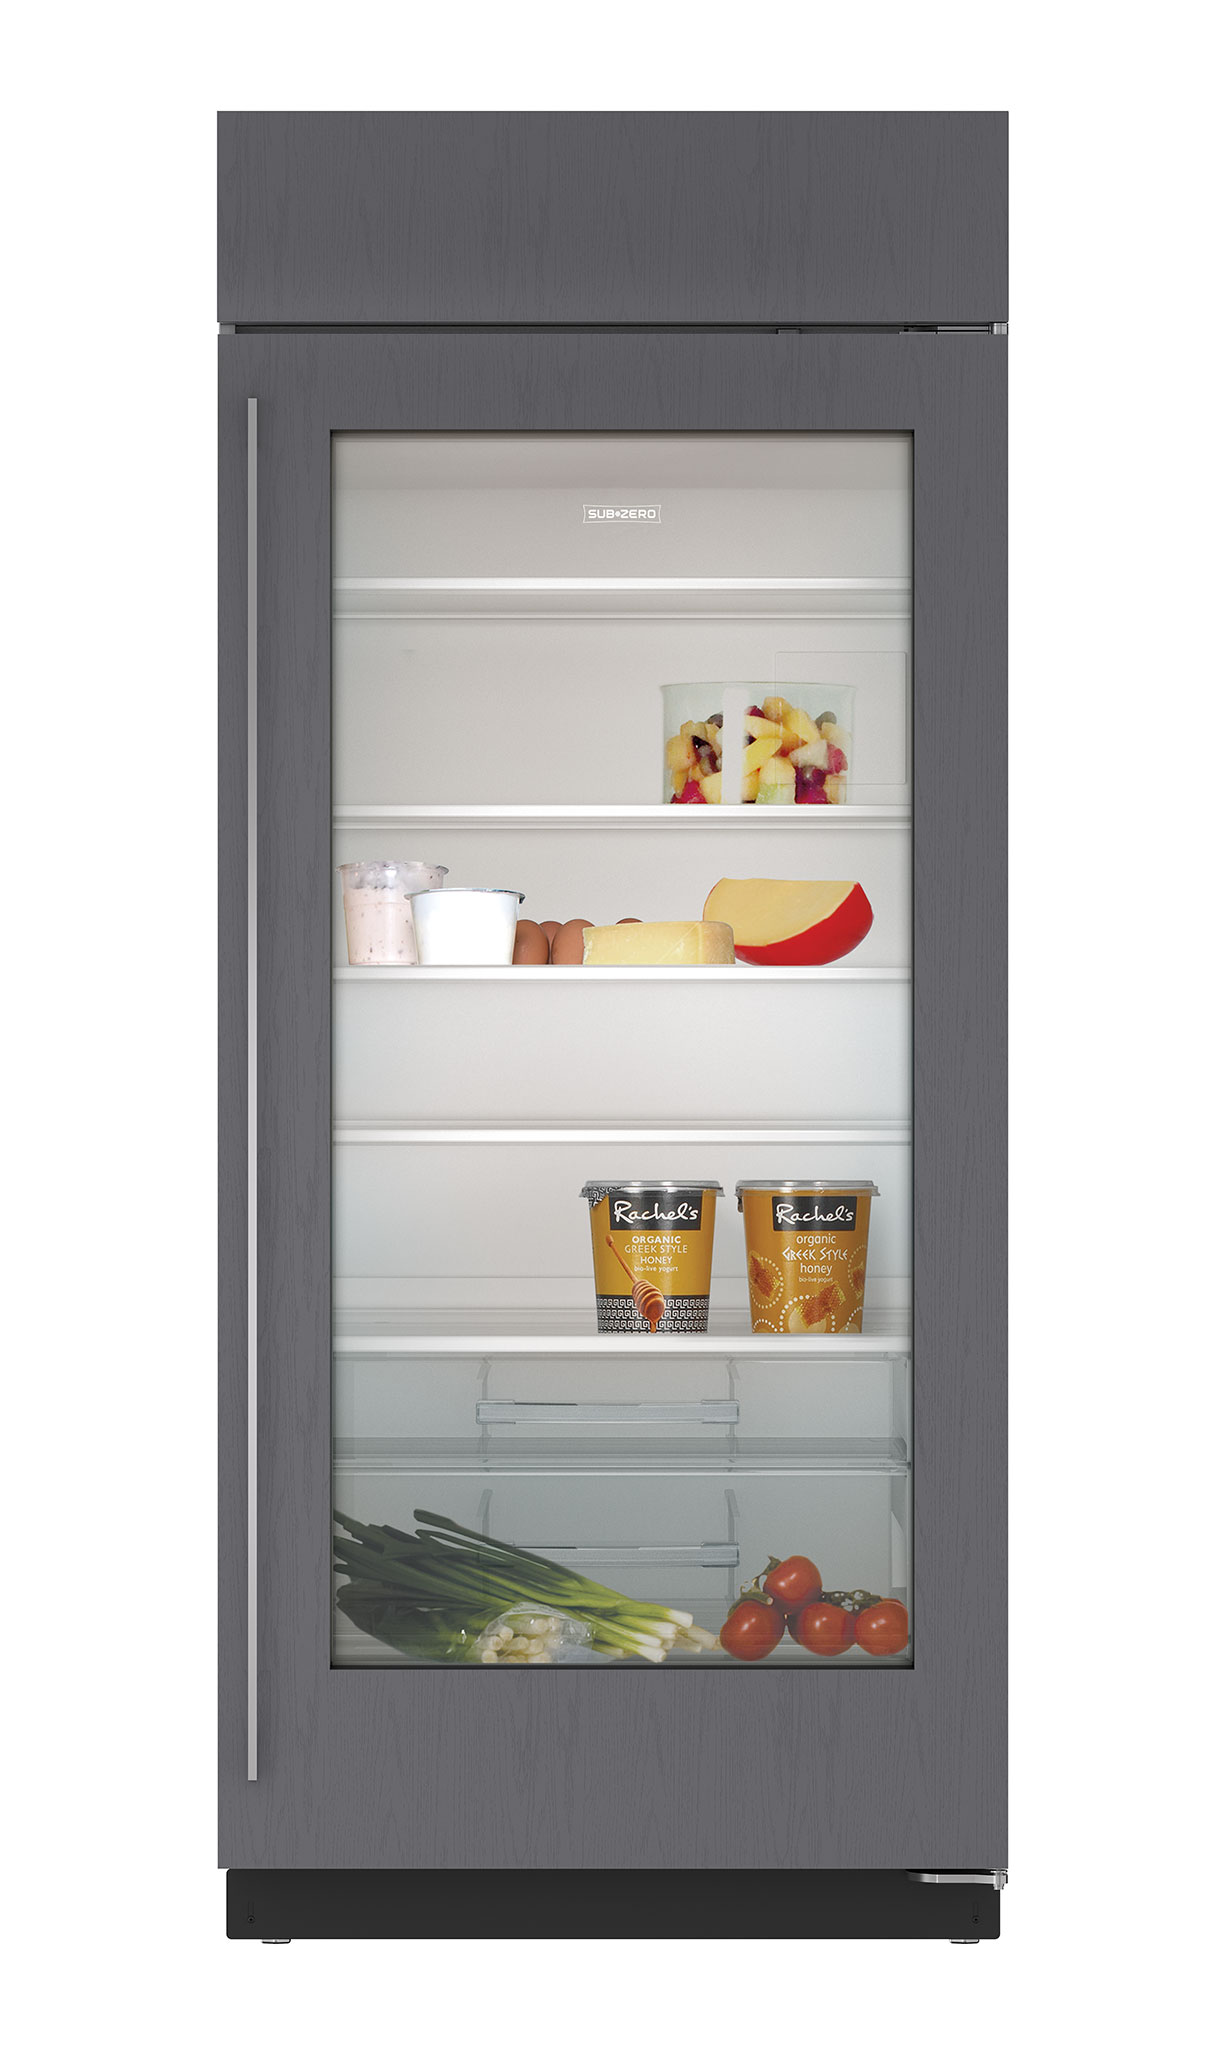 sub zerofull size refrigerationbuiltin refrigerators36 - Refridgerator Glass Door